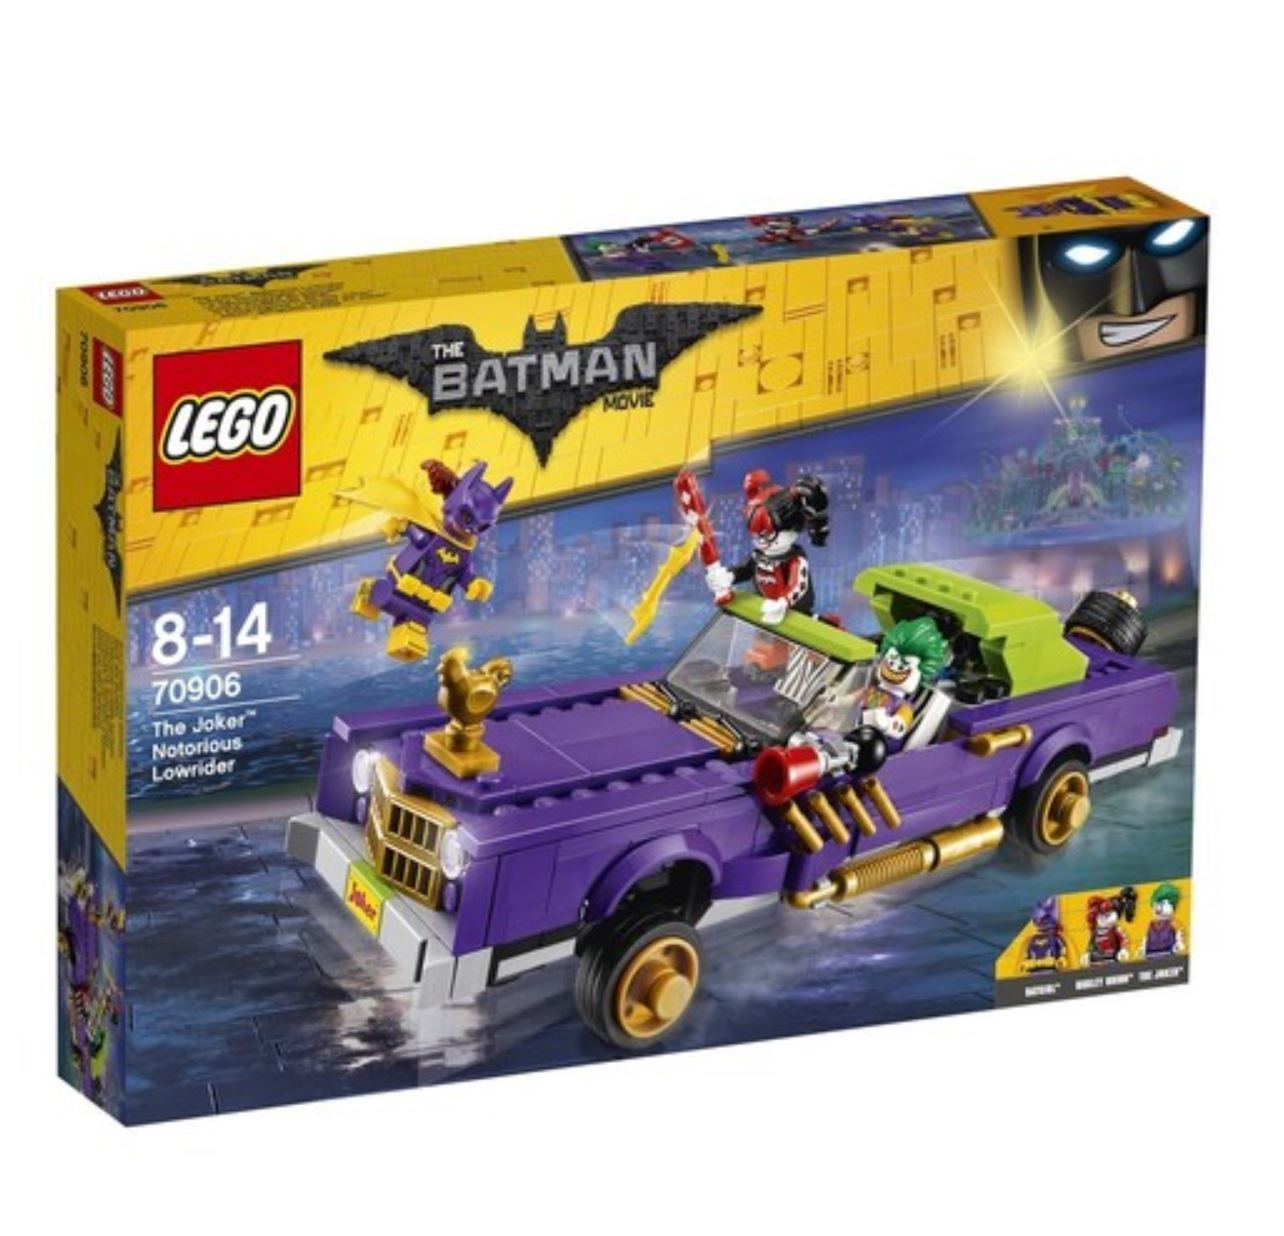 [LEGO] Batman Movie The Joker™ Notorious Lowrider 70906 2017 Version Free Ship